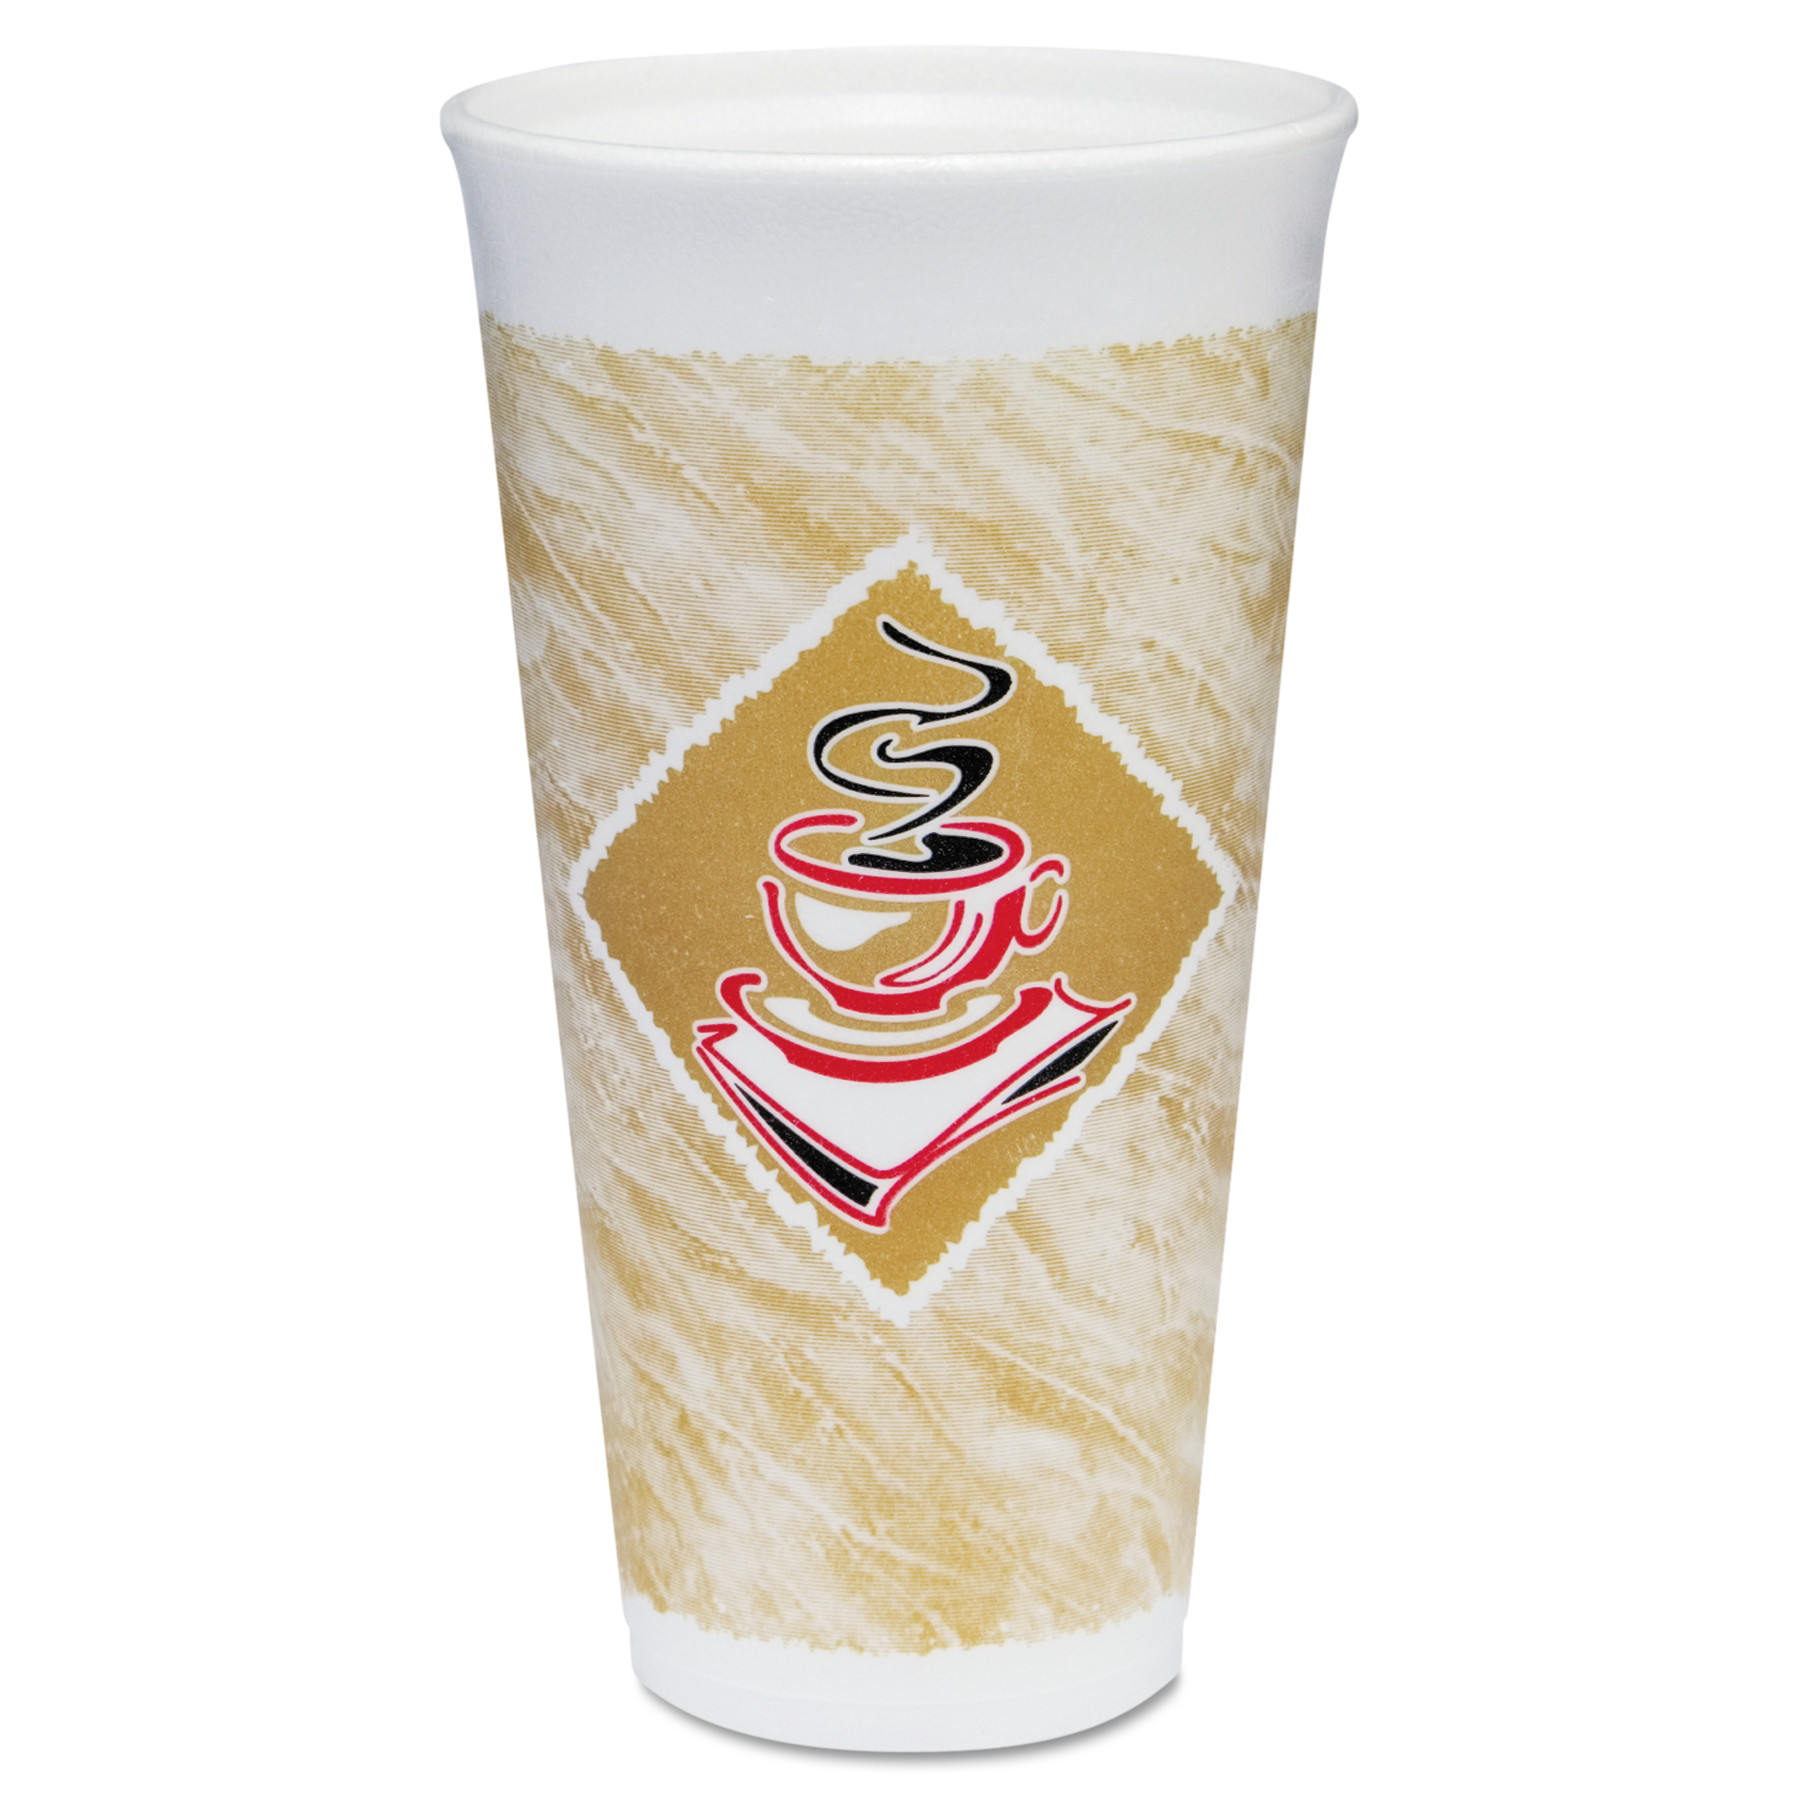 Dart Foam Hot/Cold Cups, 20 oz., Café G Design, White/Brown with Red Accents -DCC20X16G